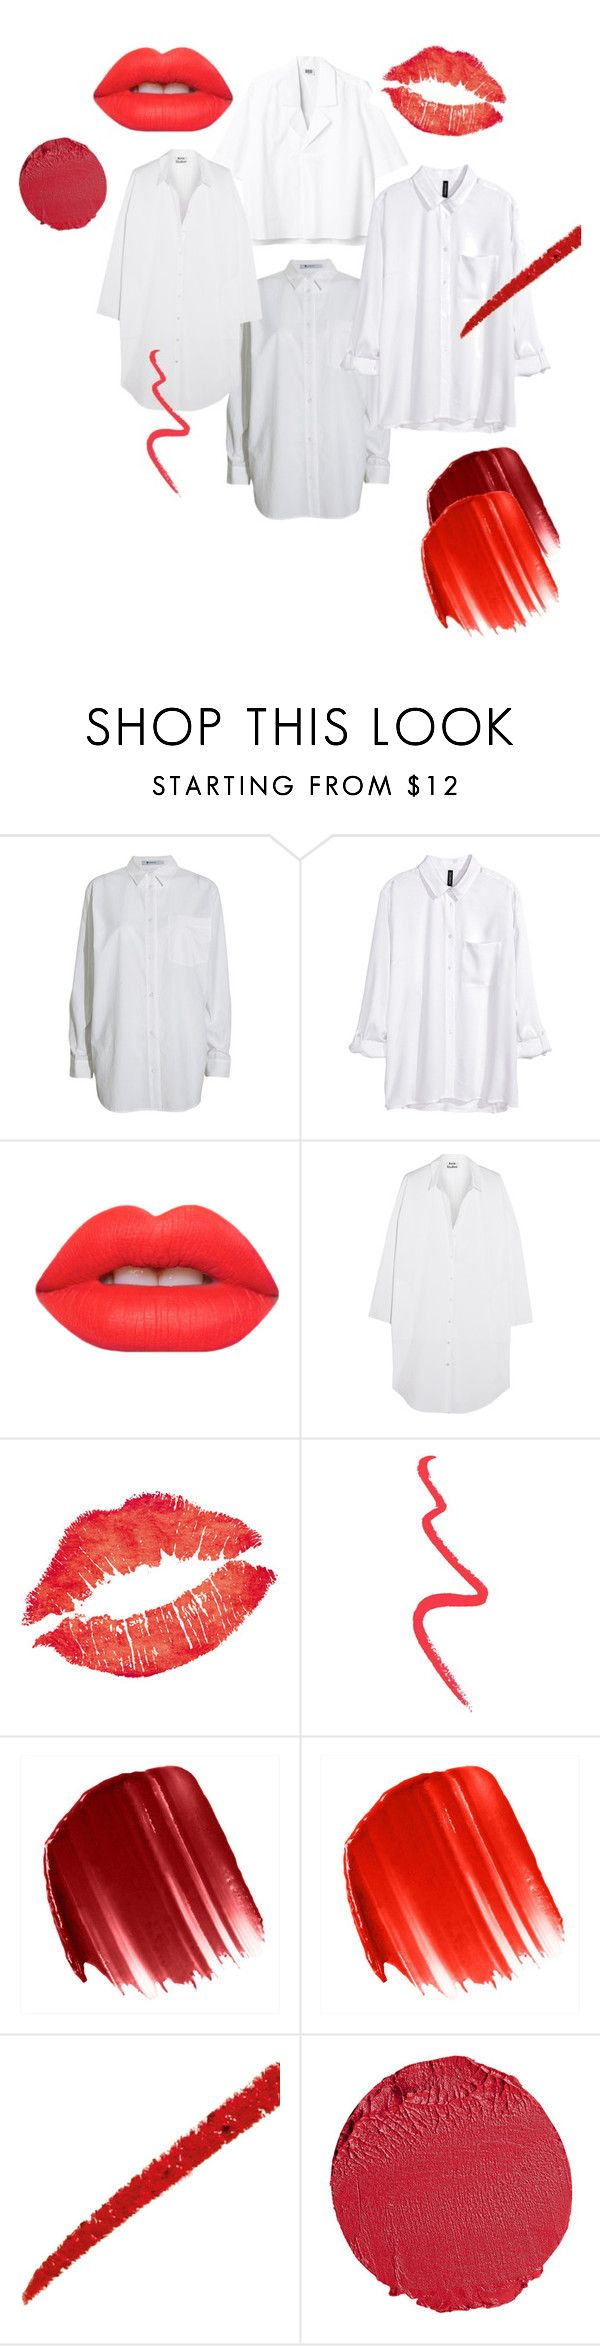 """hvit skjorte røde lepper"" by linnettebar ❤ liked on Polyvore featuring T By Alexander Wang, H&M, Lime Crime, Acne Studios, Topshop, Urban Decay, Gucci, Bobbi Brown Cosmetics, women's clothing and women's fashion"